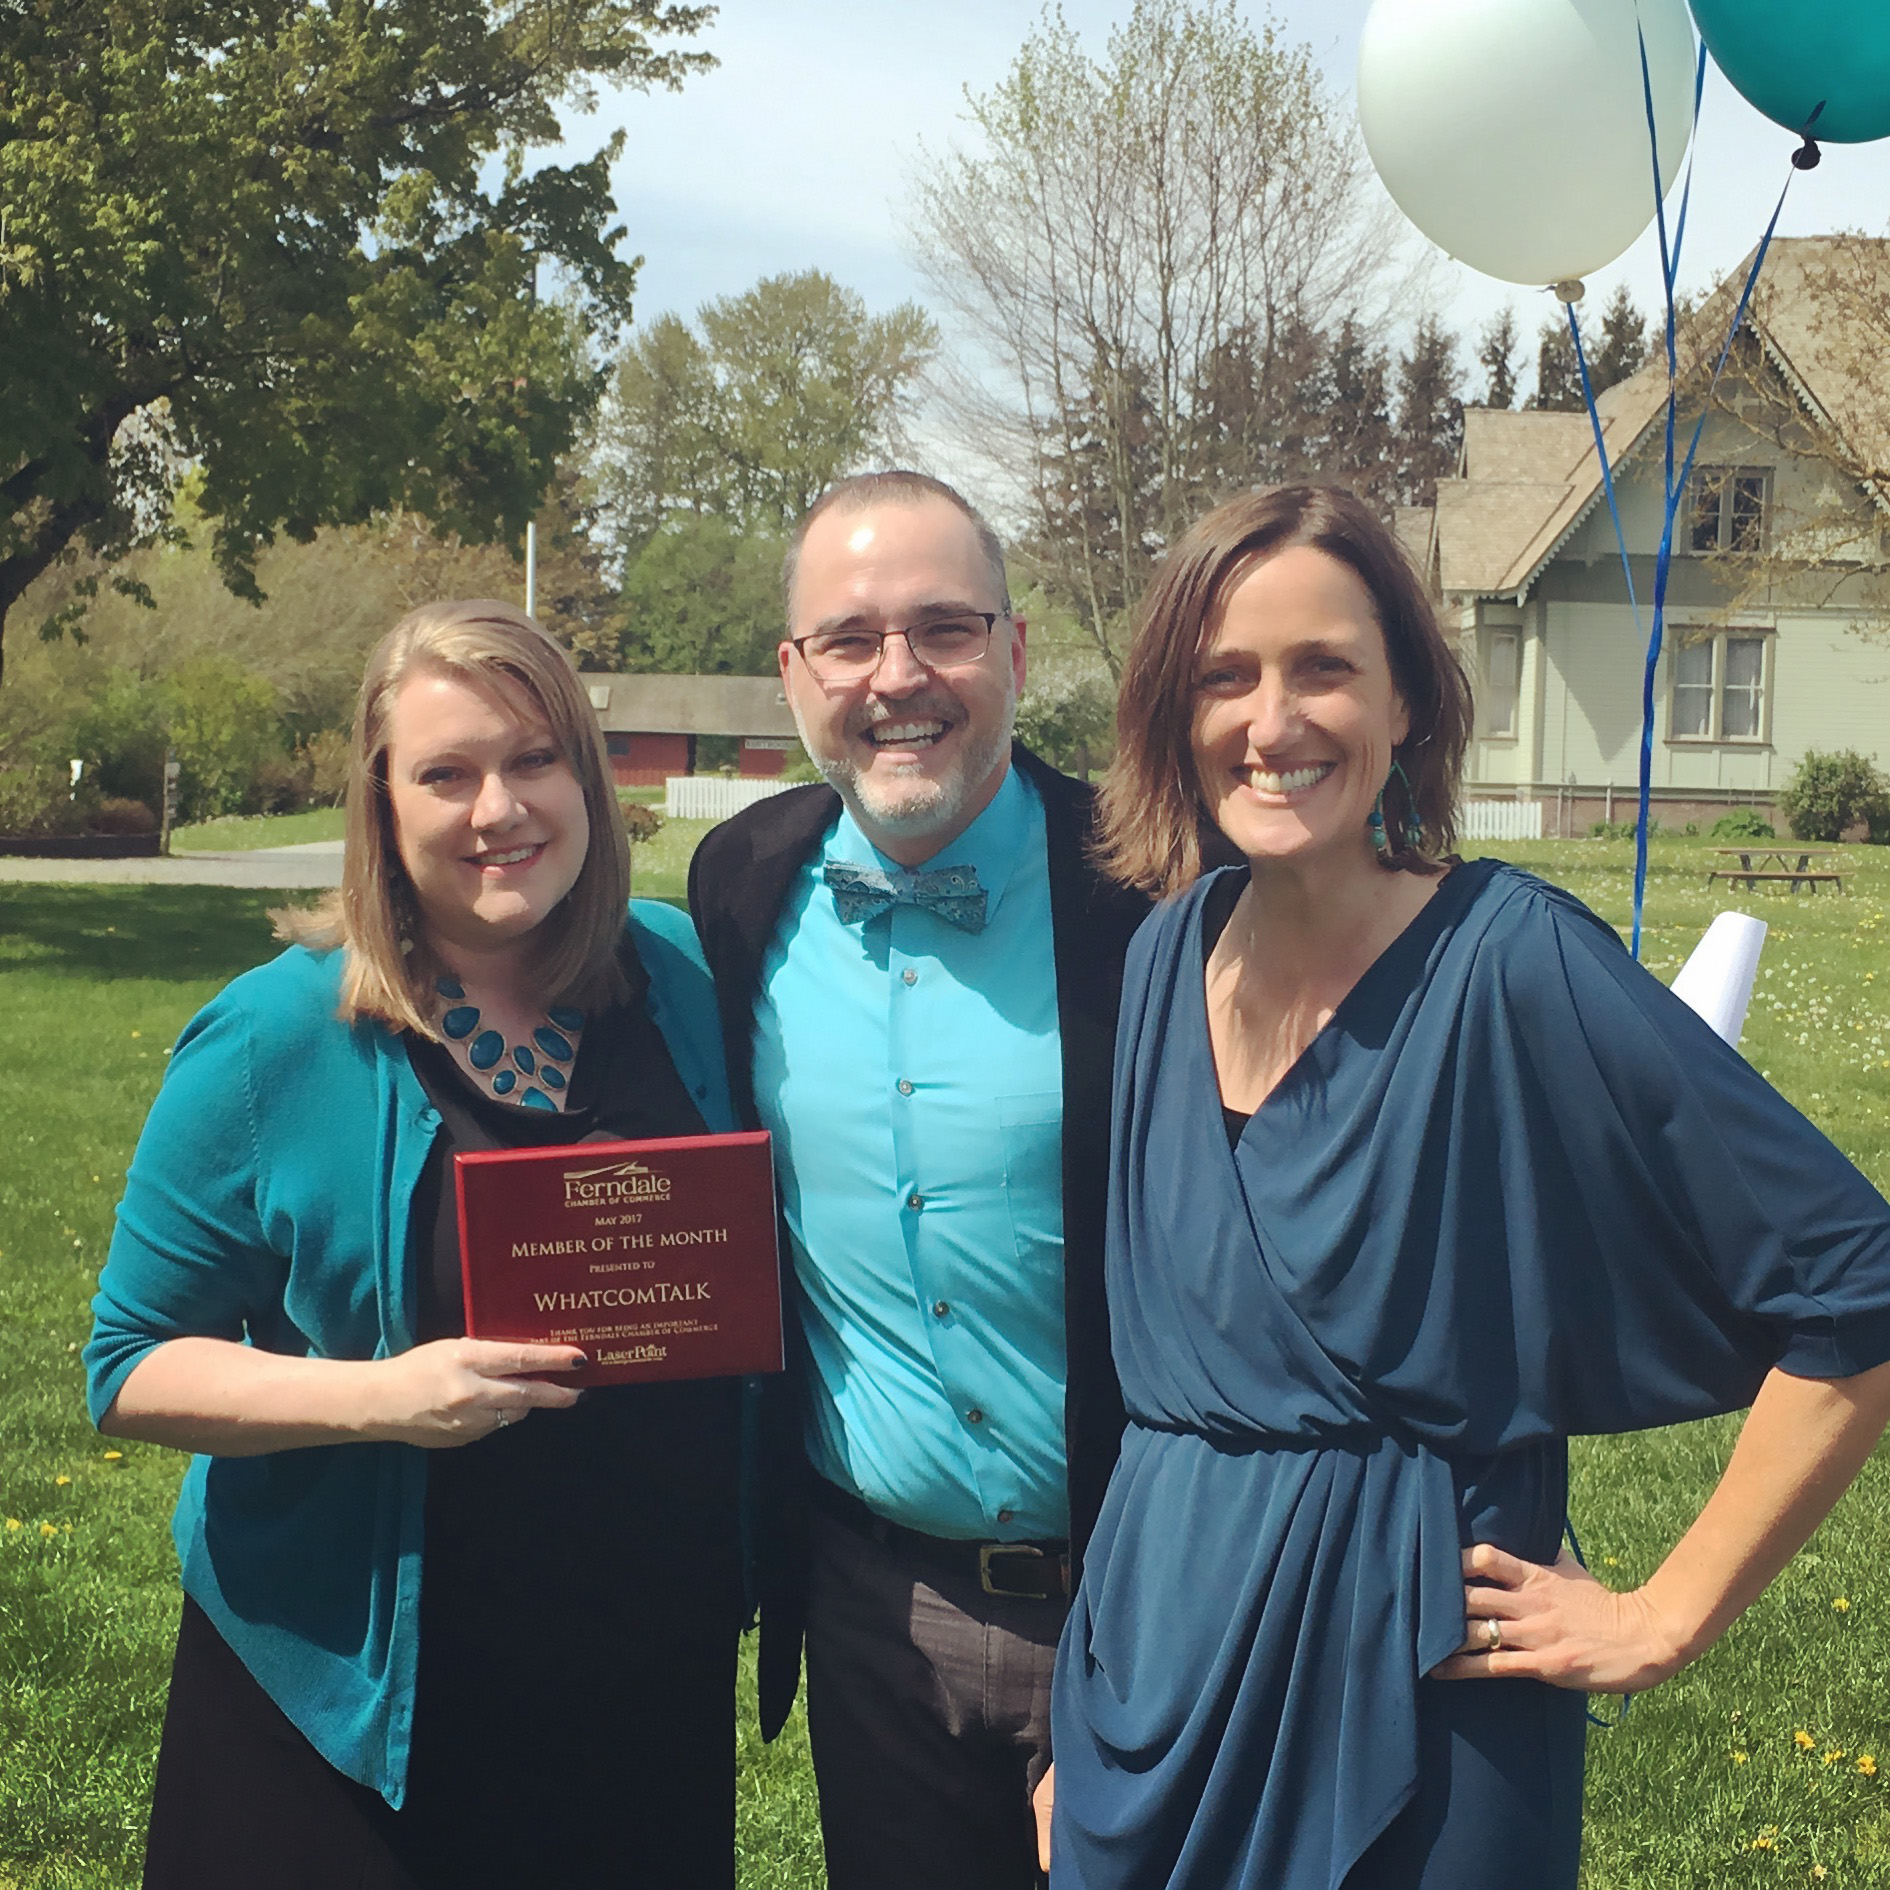 WhatcomTalk Honored as Member of the Month by Ferndale Chamber of Commerce